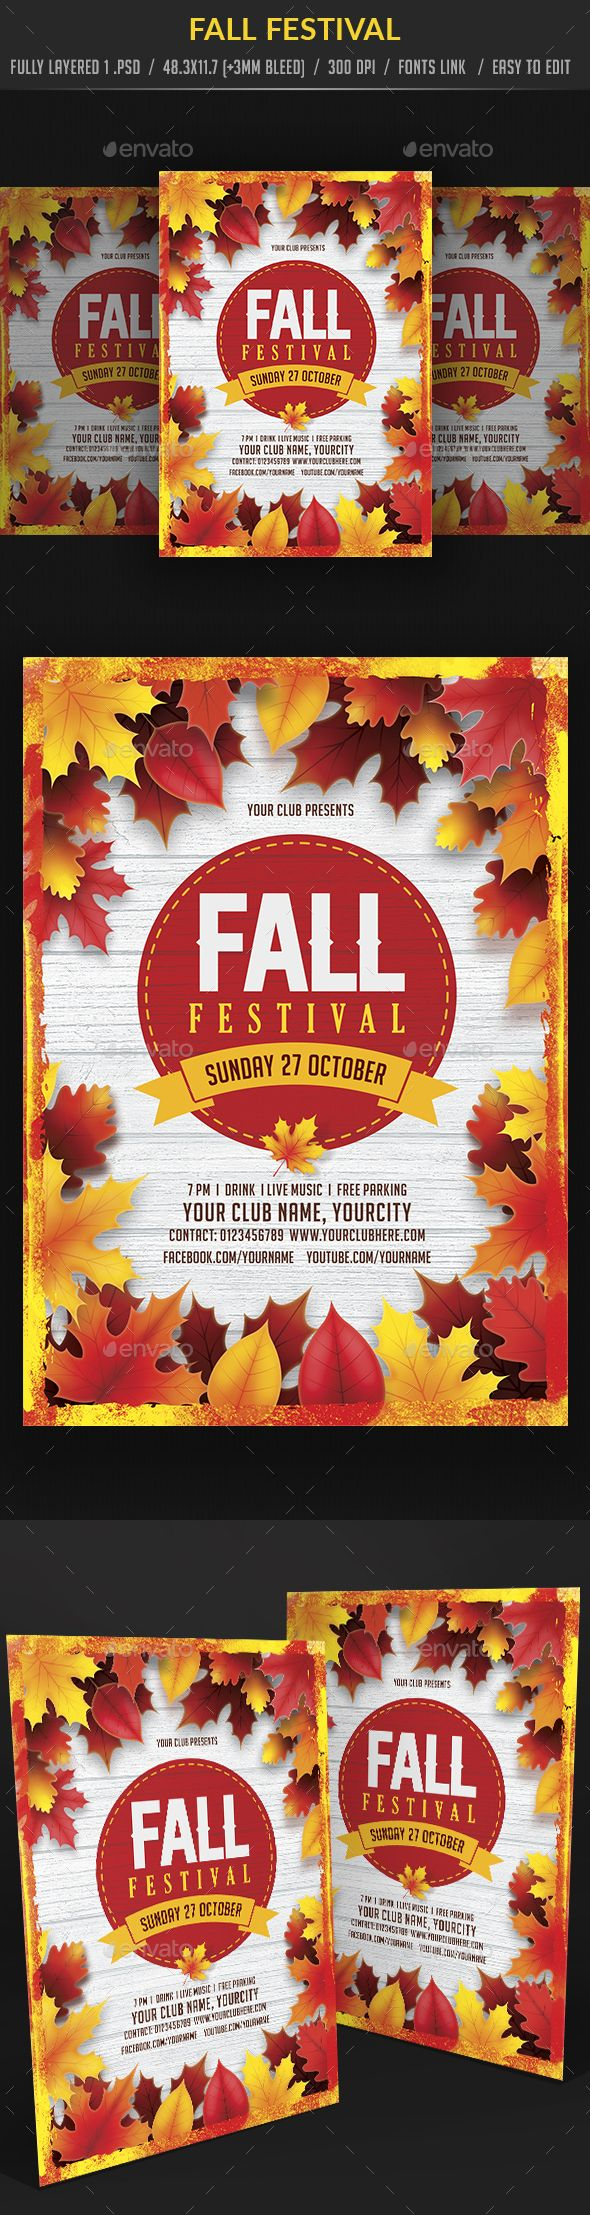 fall festival autumn fall pinterest flyer template template